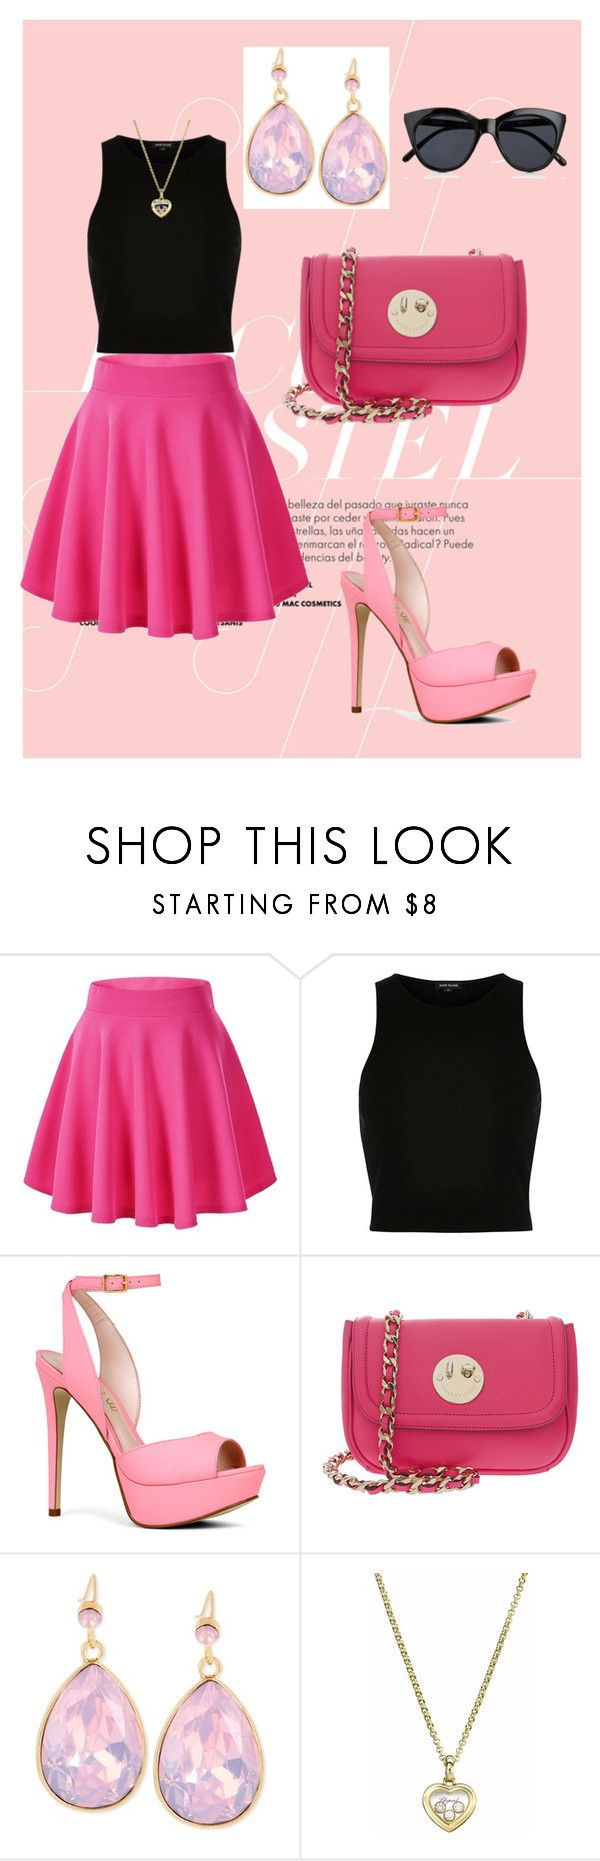 """""""1"""" by adnana544 ❤ liked on Polyvore featuring River Island, ALDO, Hill & Friends, INC International Concepts, Chopard, Le Specs and pretty"""